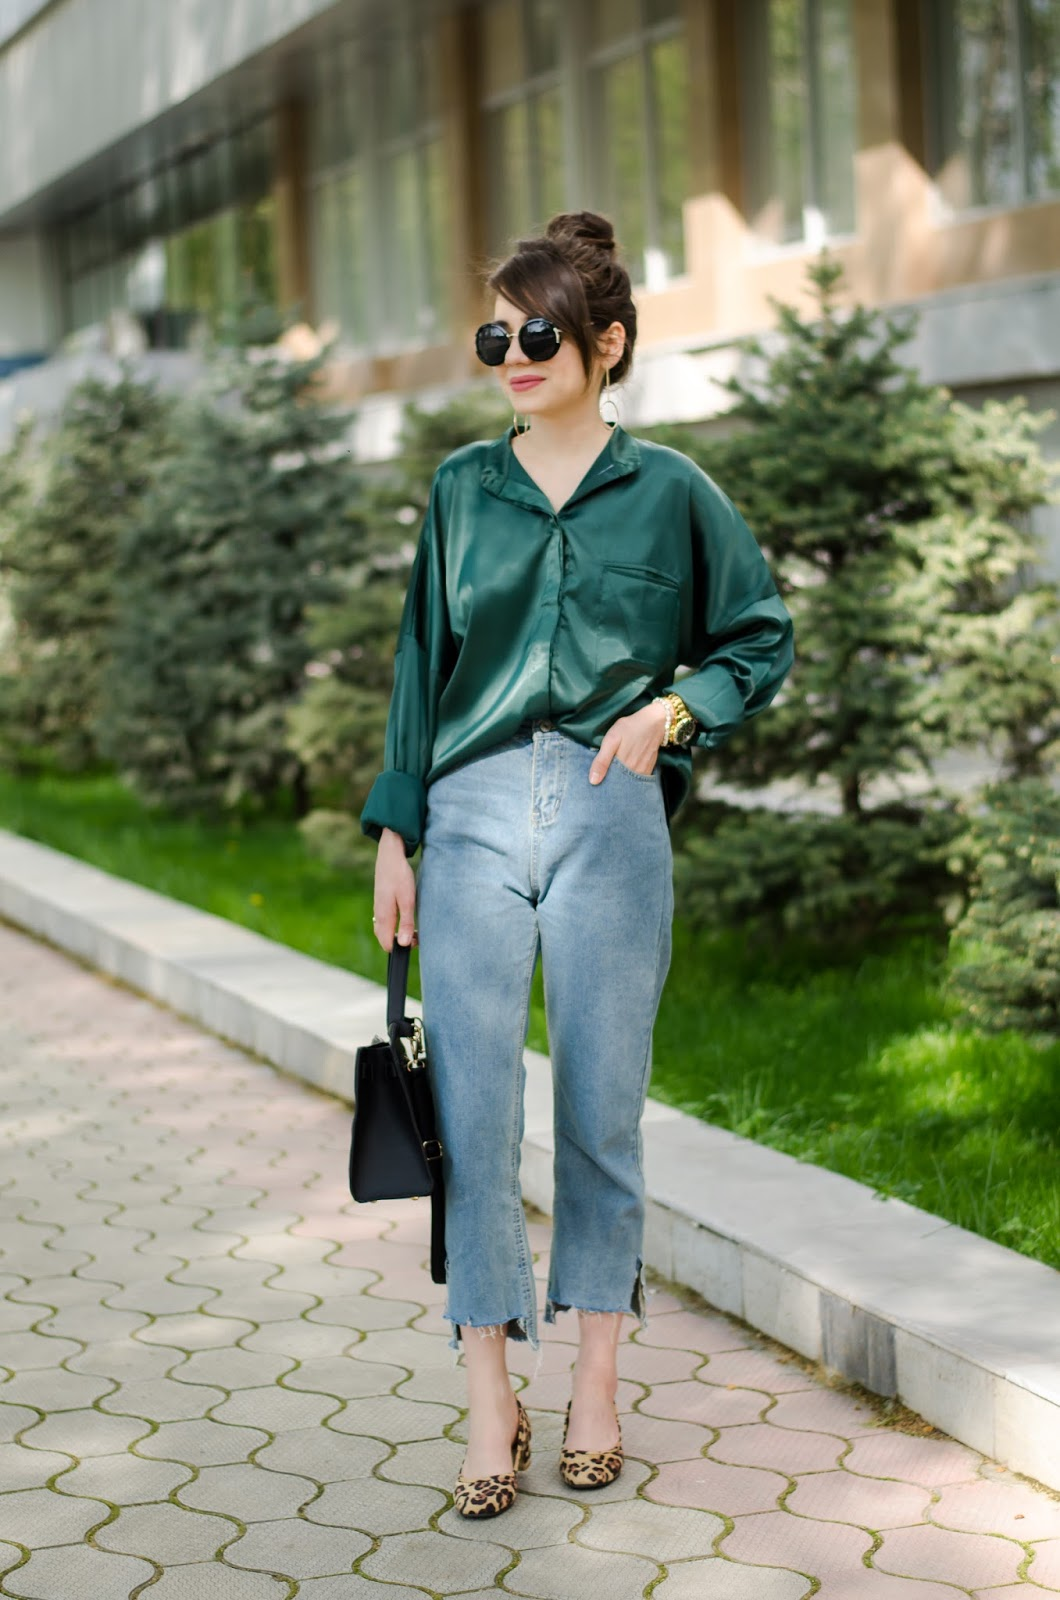 fashion blogger diyorasnotes diyora beta lookoftheday outfit mom jeans leopard heels green vintage shirt